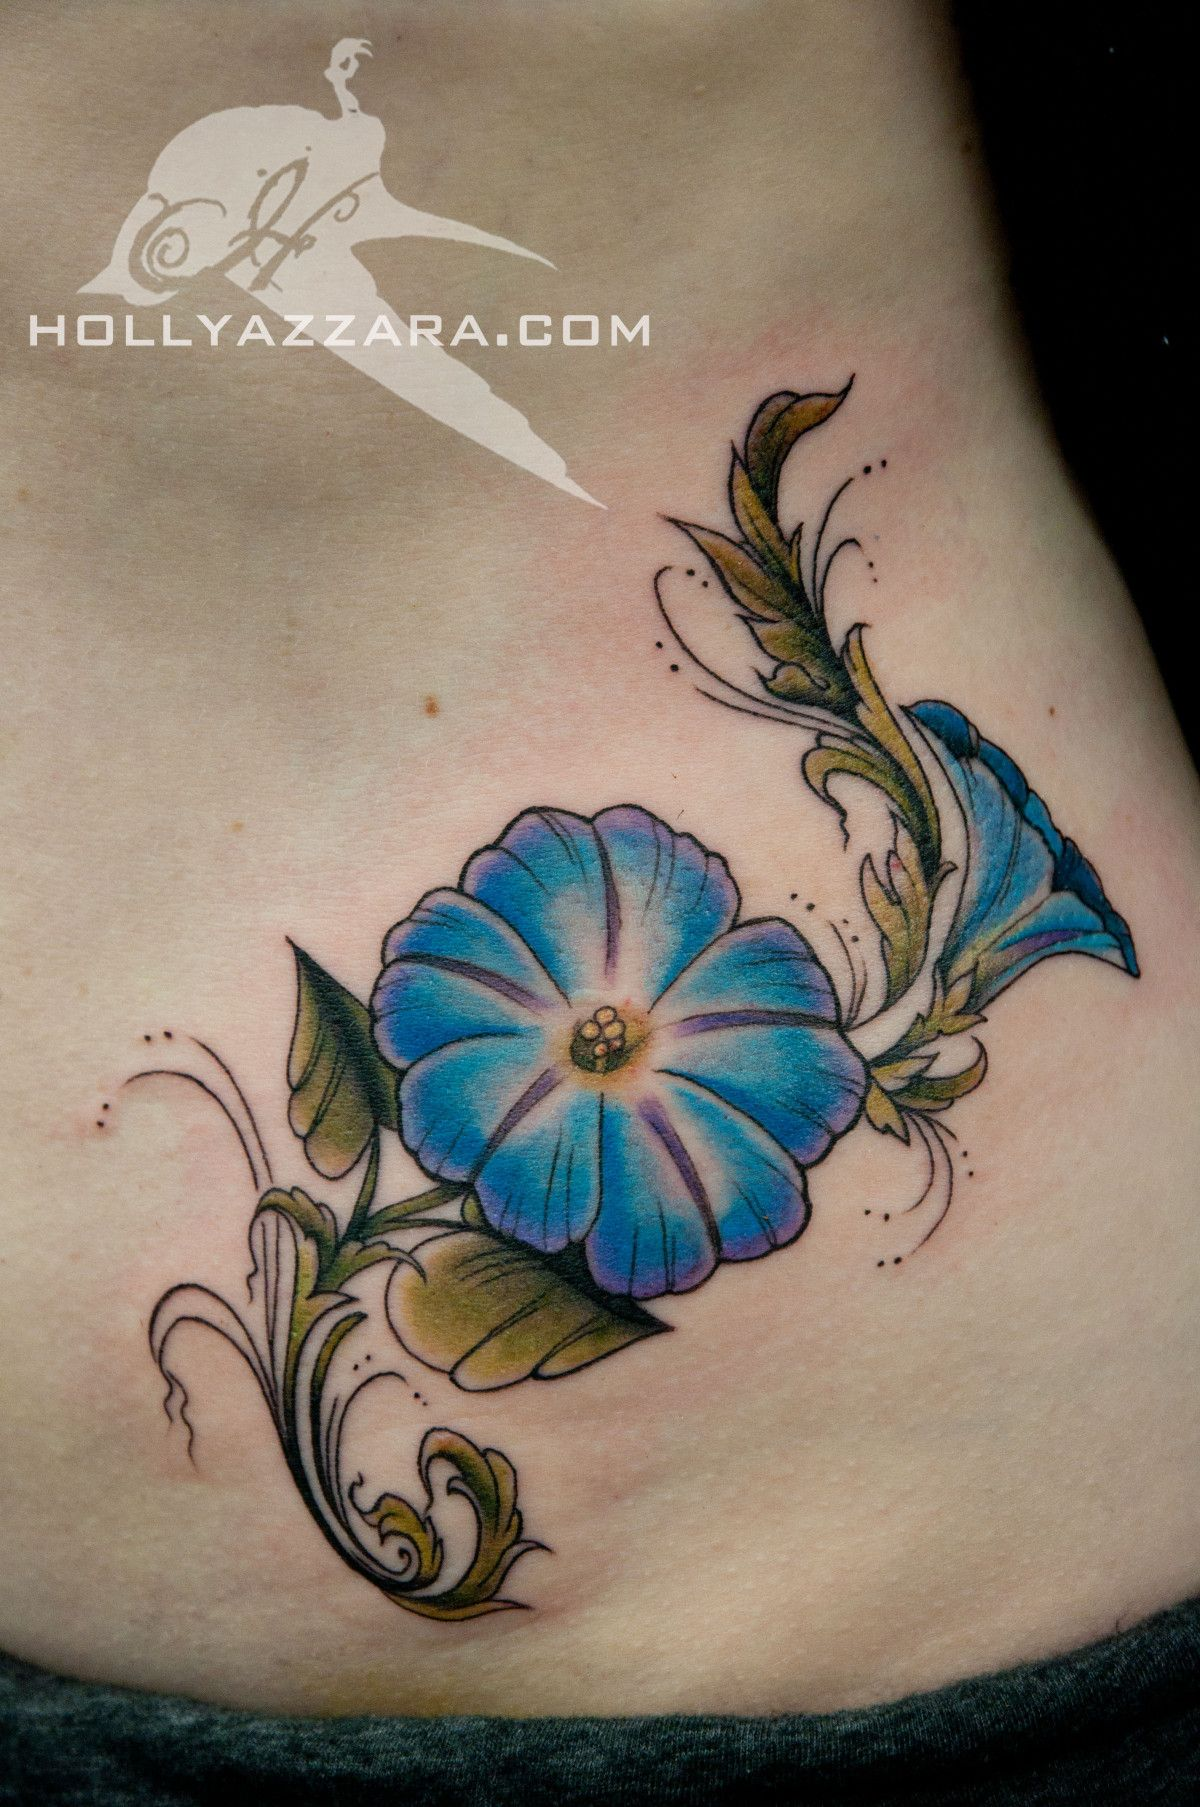 Morning glory color Morning glory tattoo, Vintage tattoo